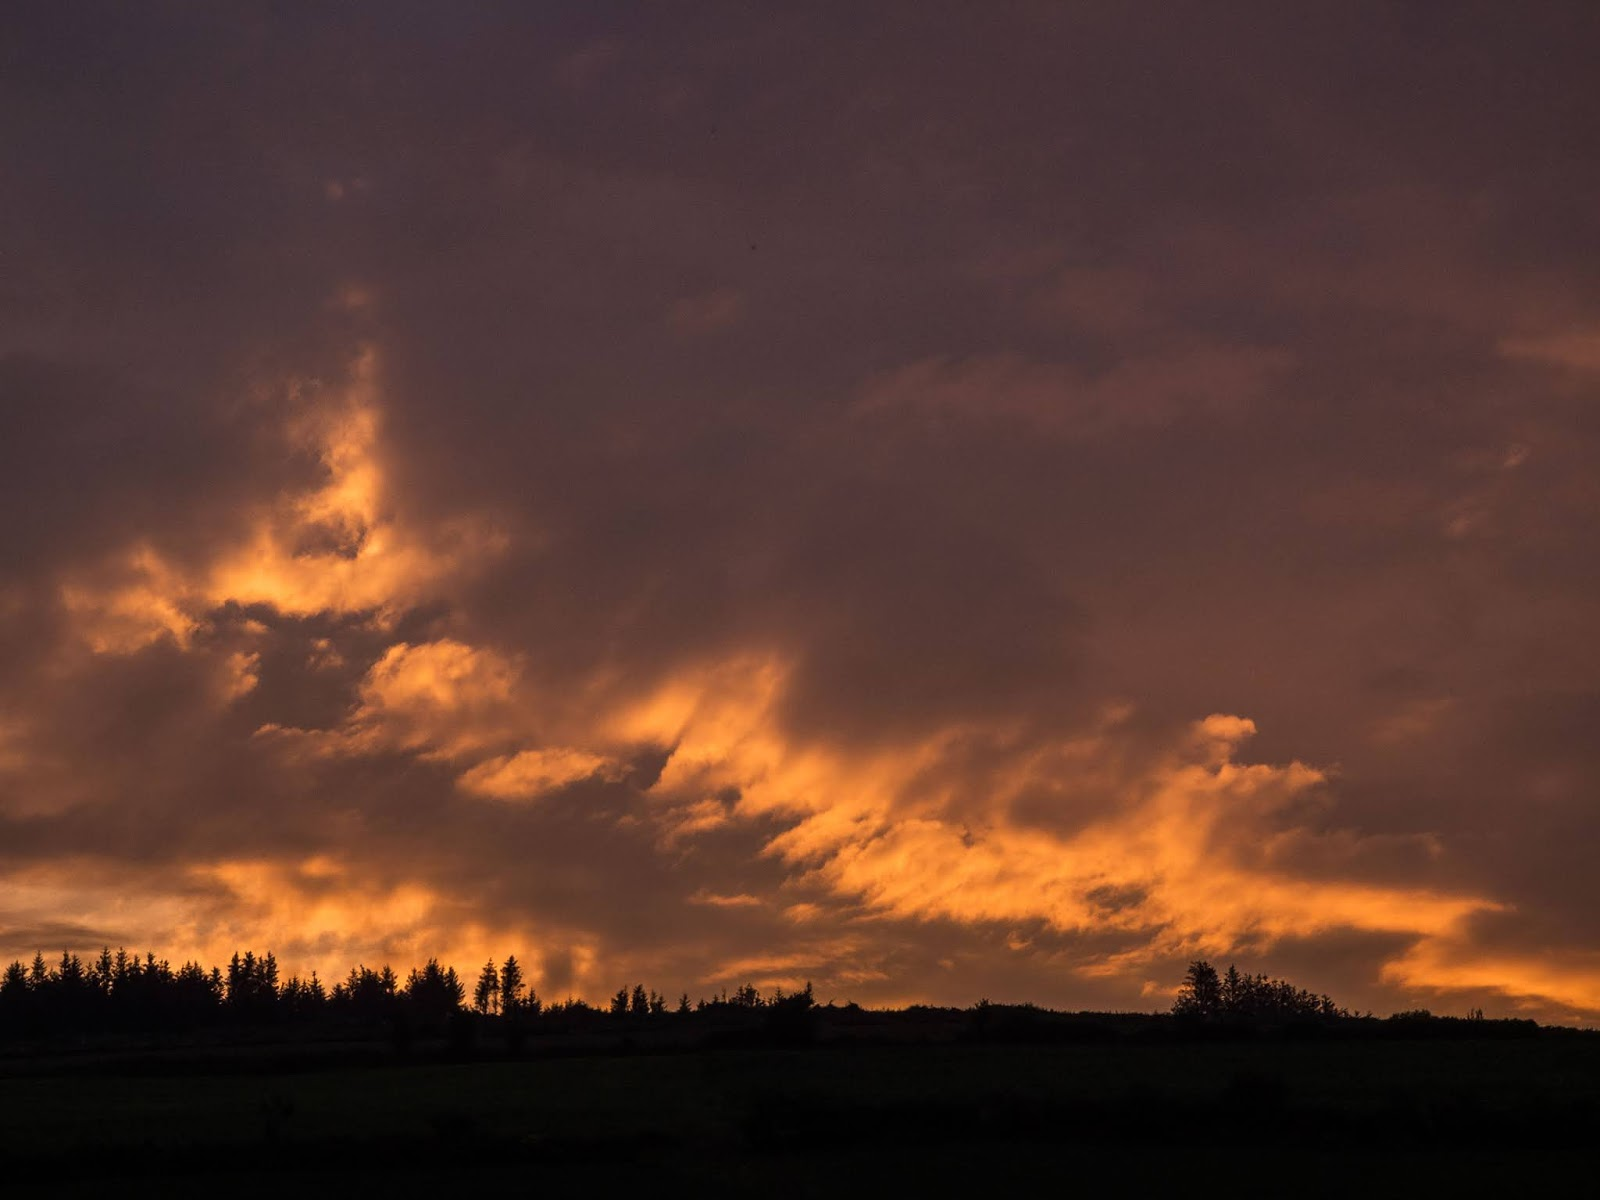 Dark and fiery looking clouds at sunset over a hill in the Boggeragh Mountains, Co.Cork.